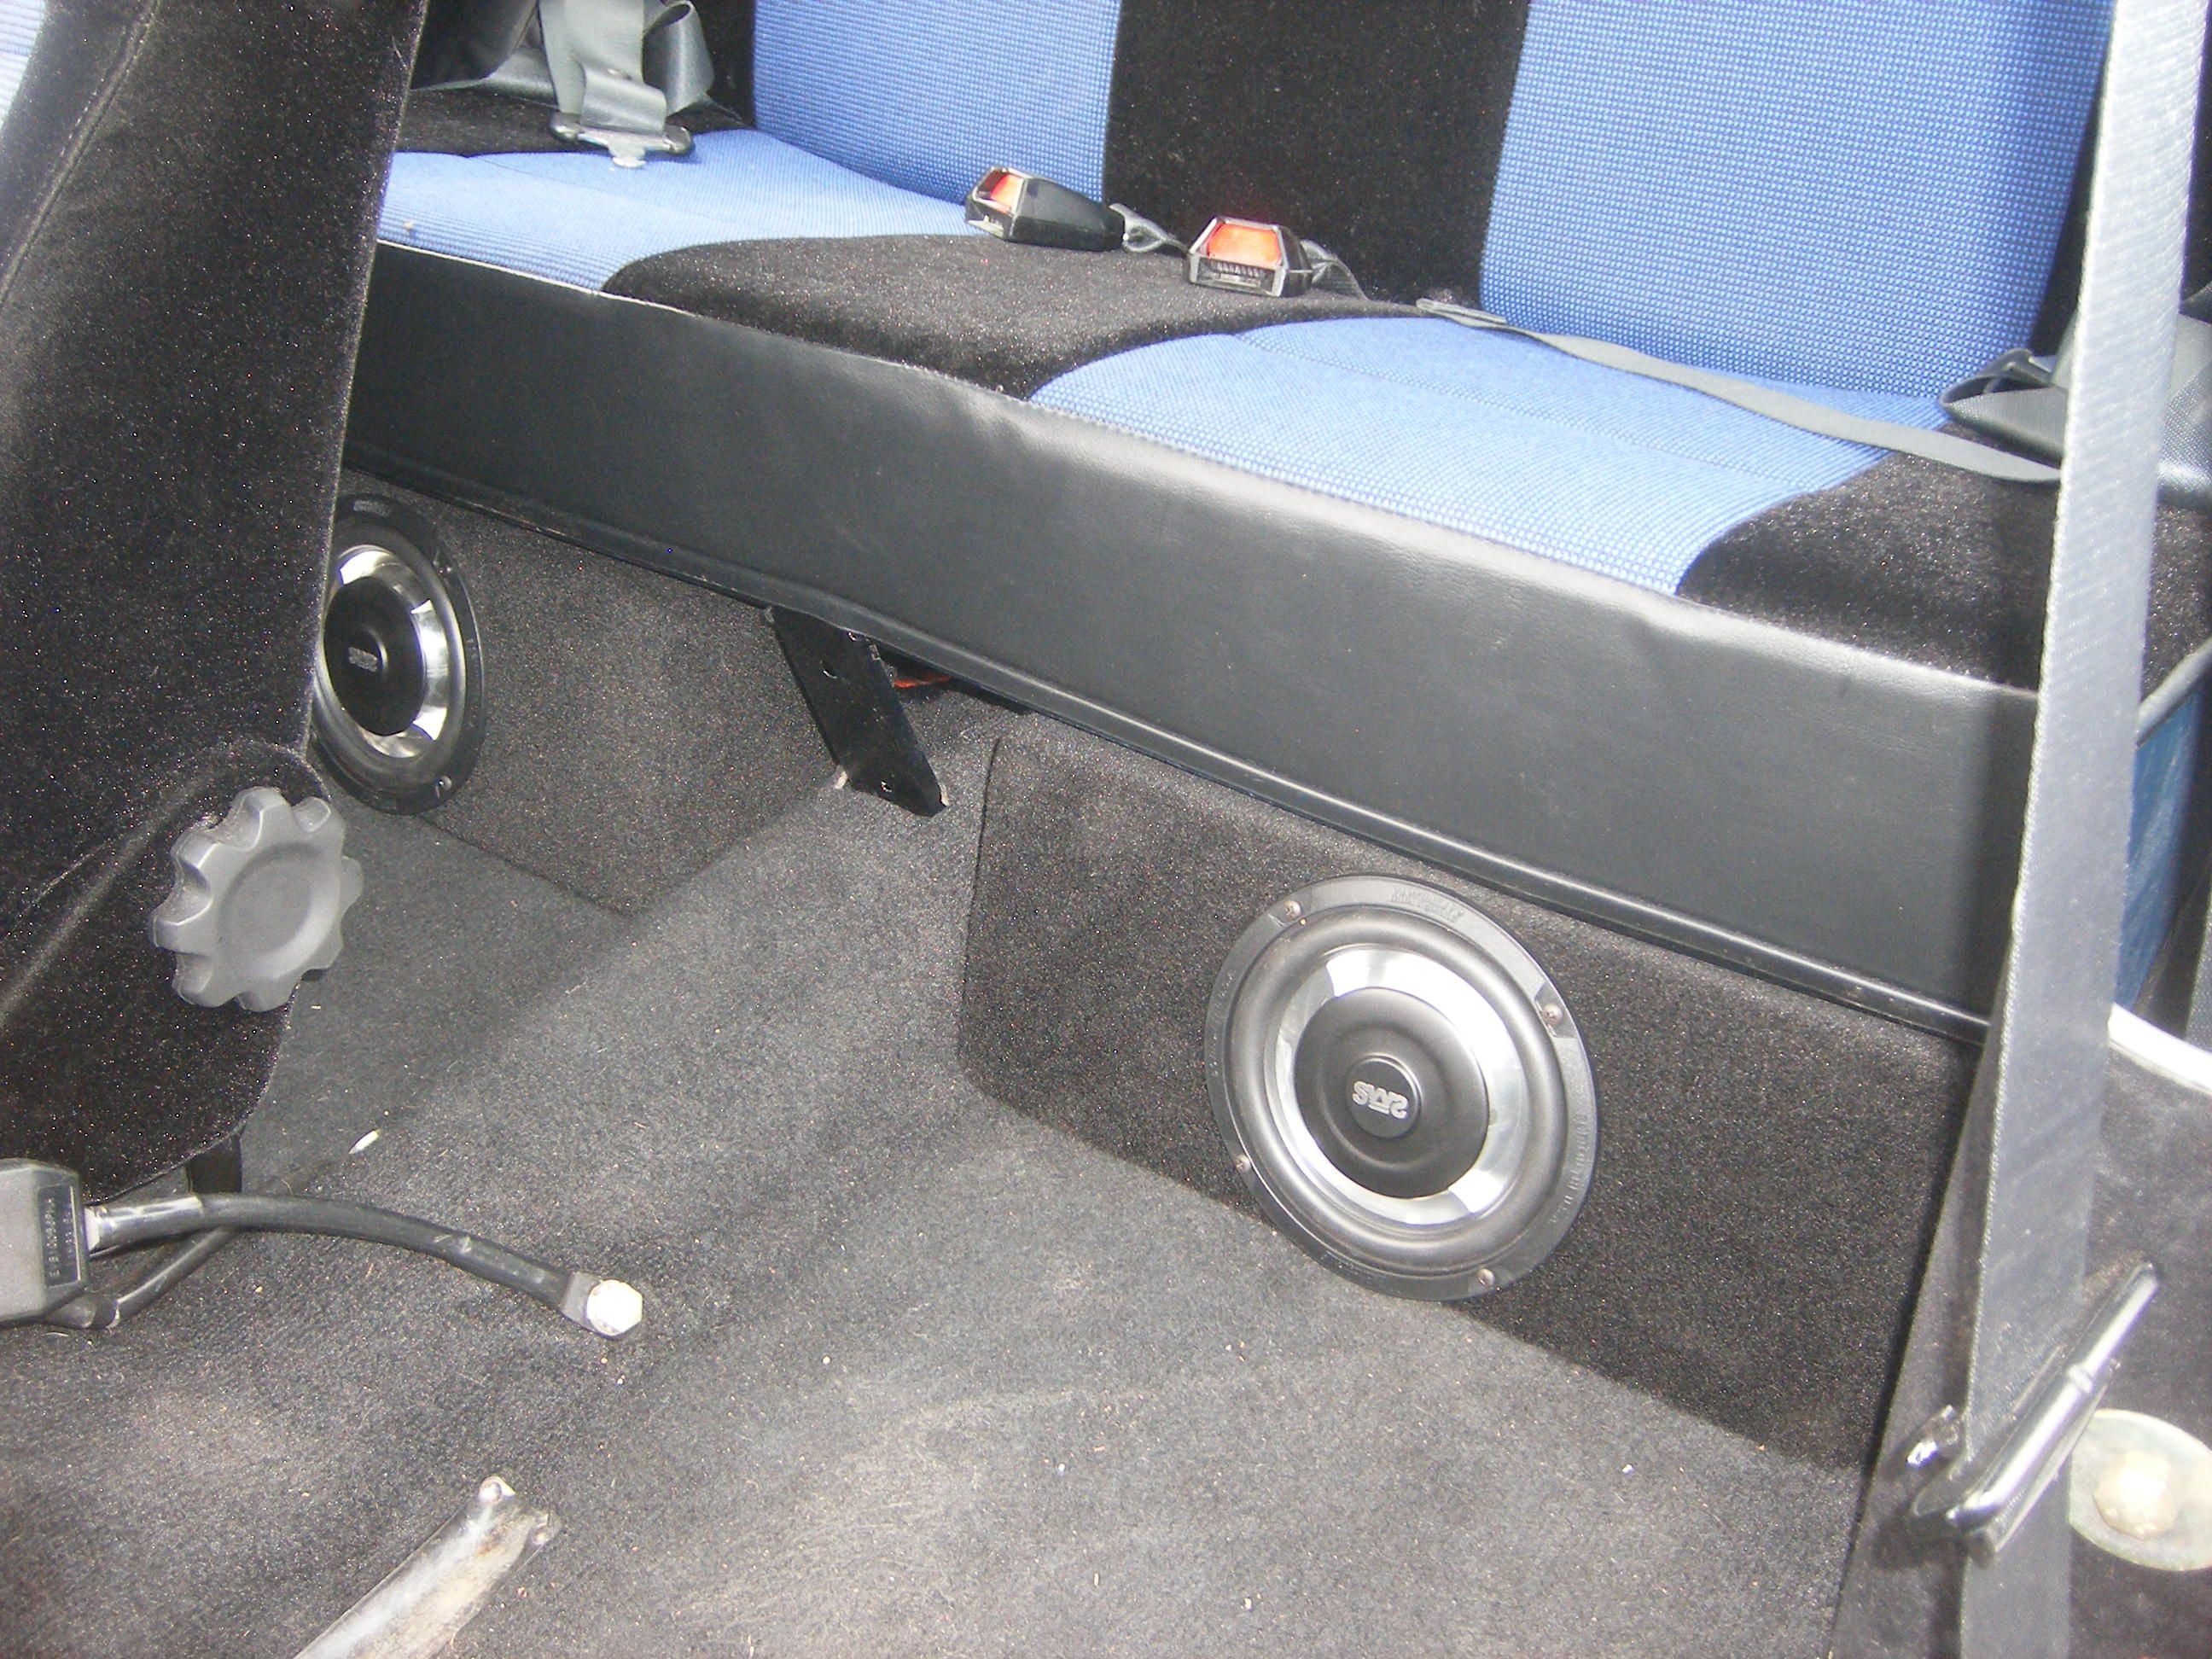 hight resolution of big or small we do it all back in 2007 we did a complete audio install on this right hand drive 76 mini upgrades included a sony stereo